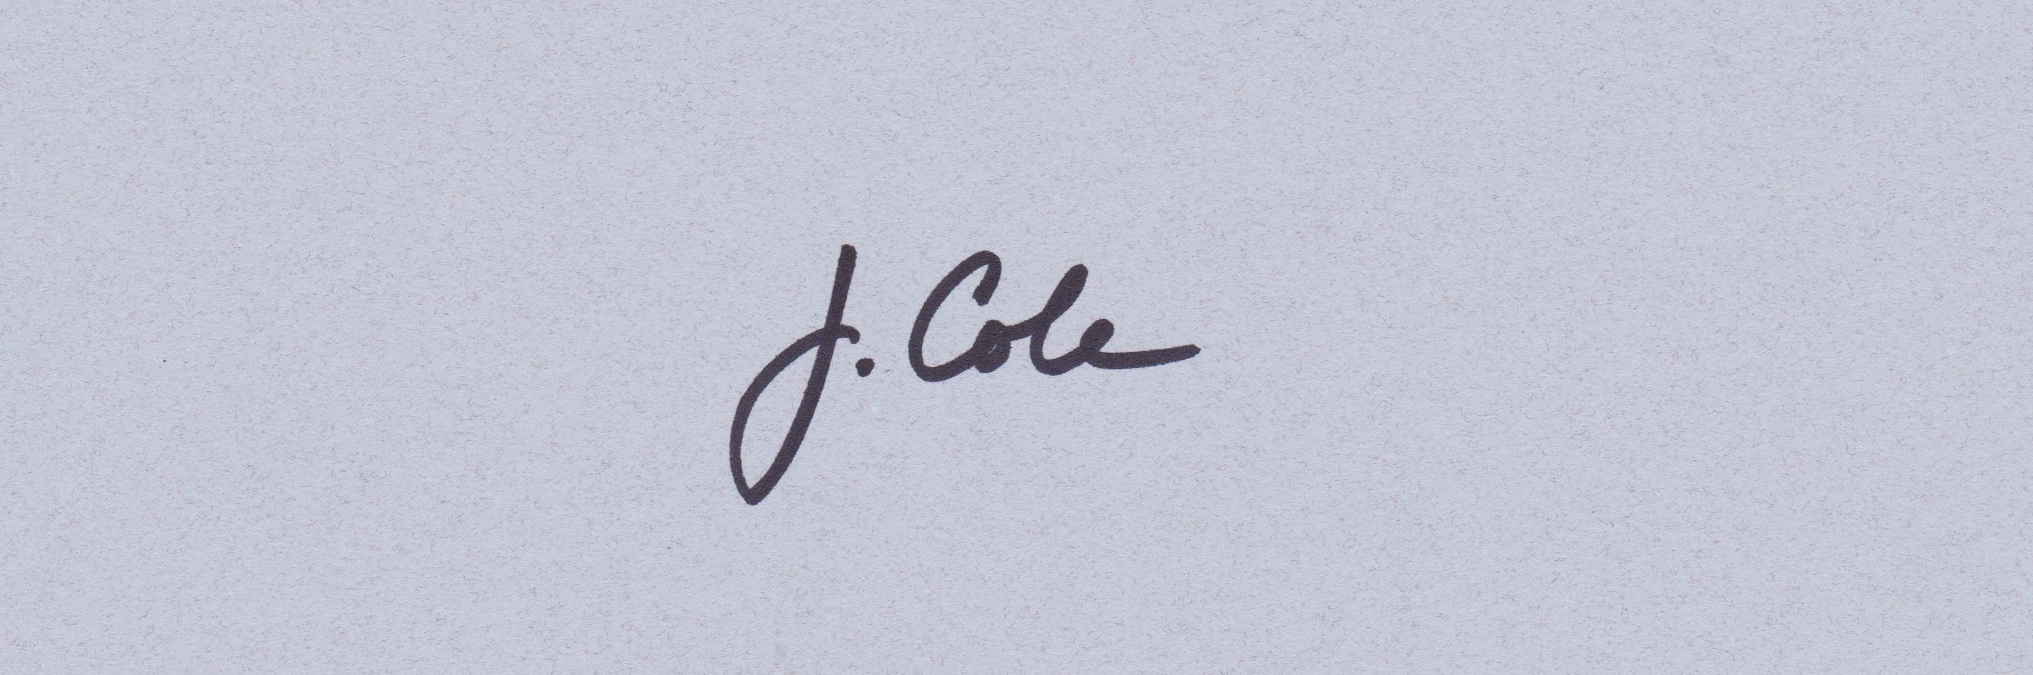 Jennifer Cole's Signature